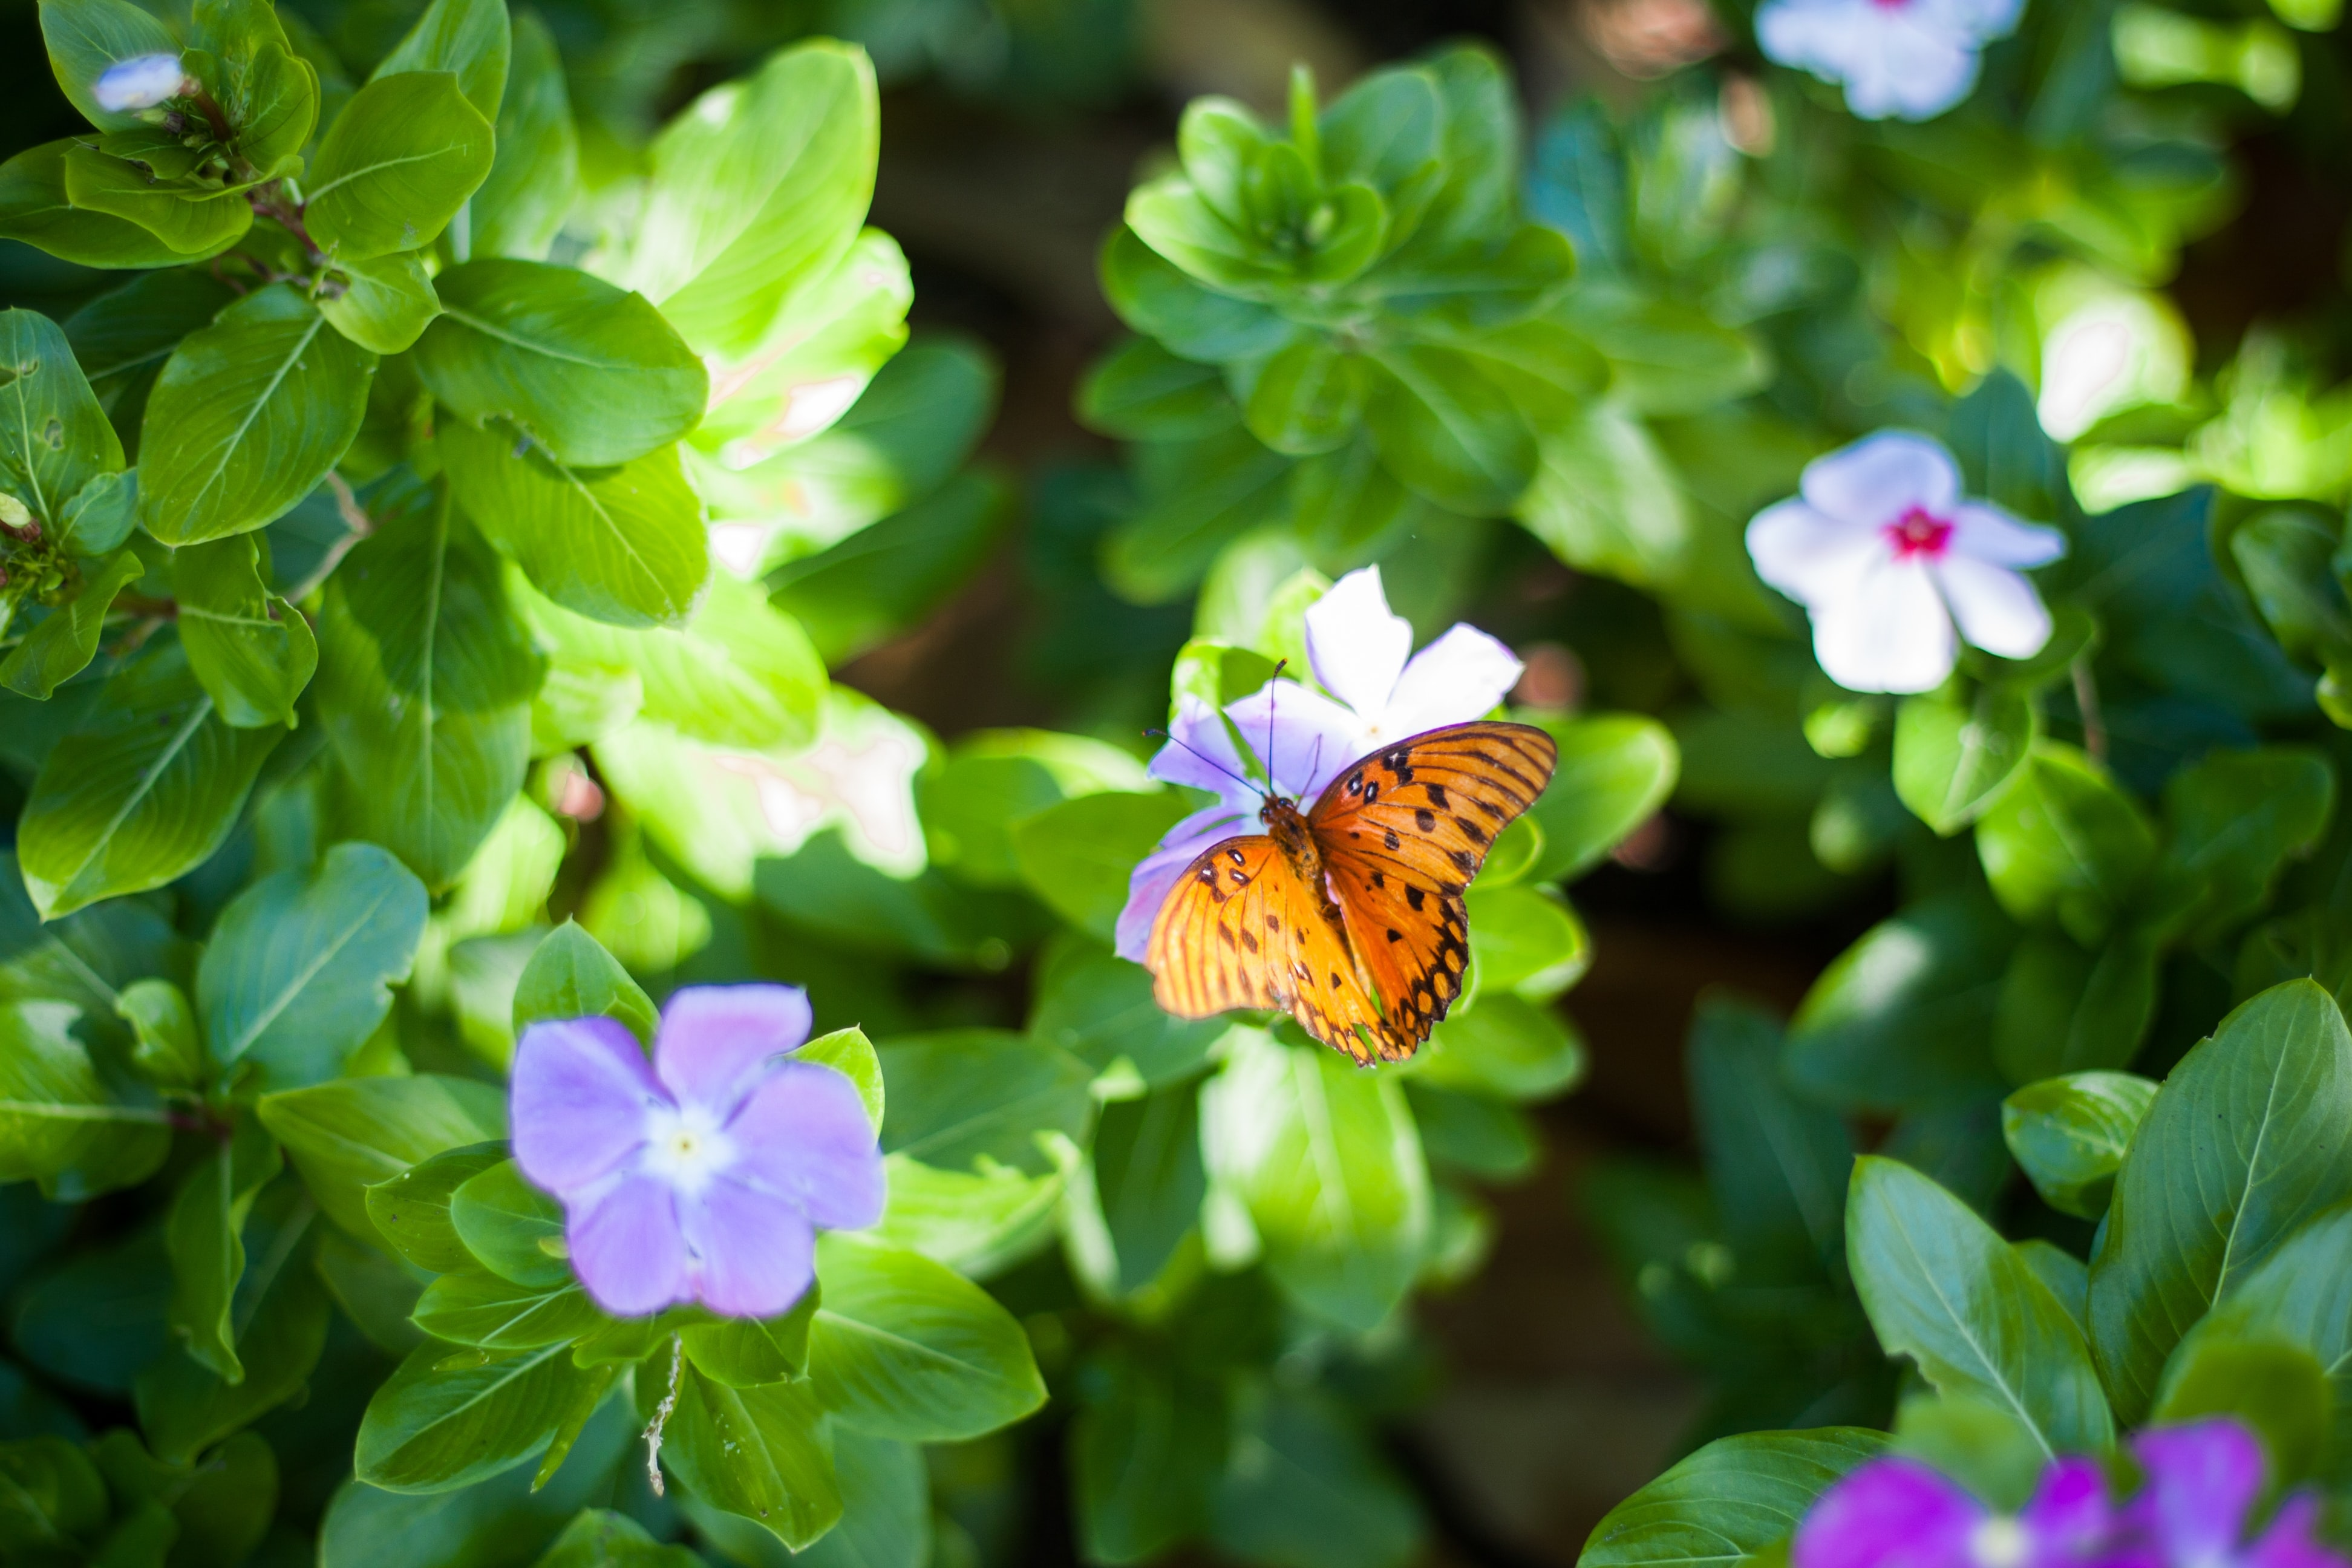 A top view of an orange butterfly sitting on violet flowers